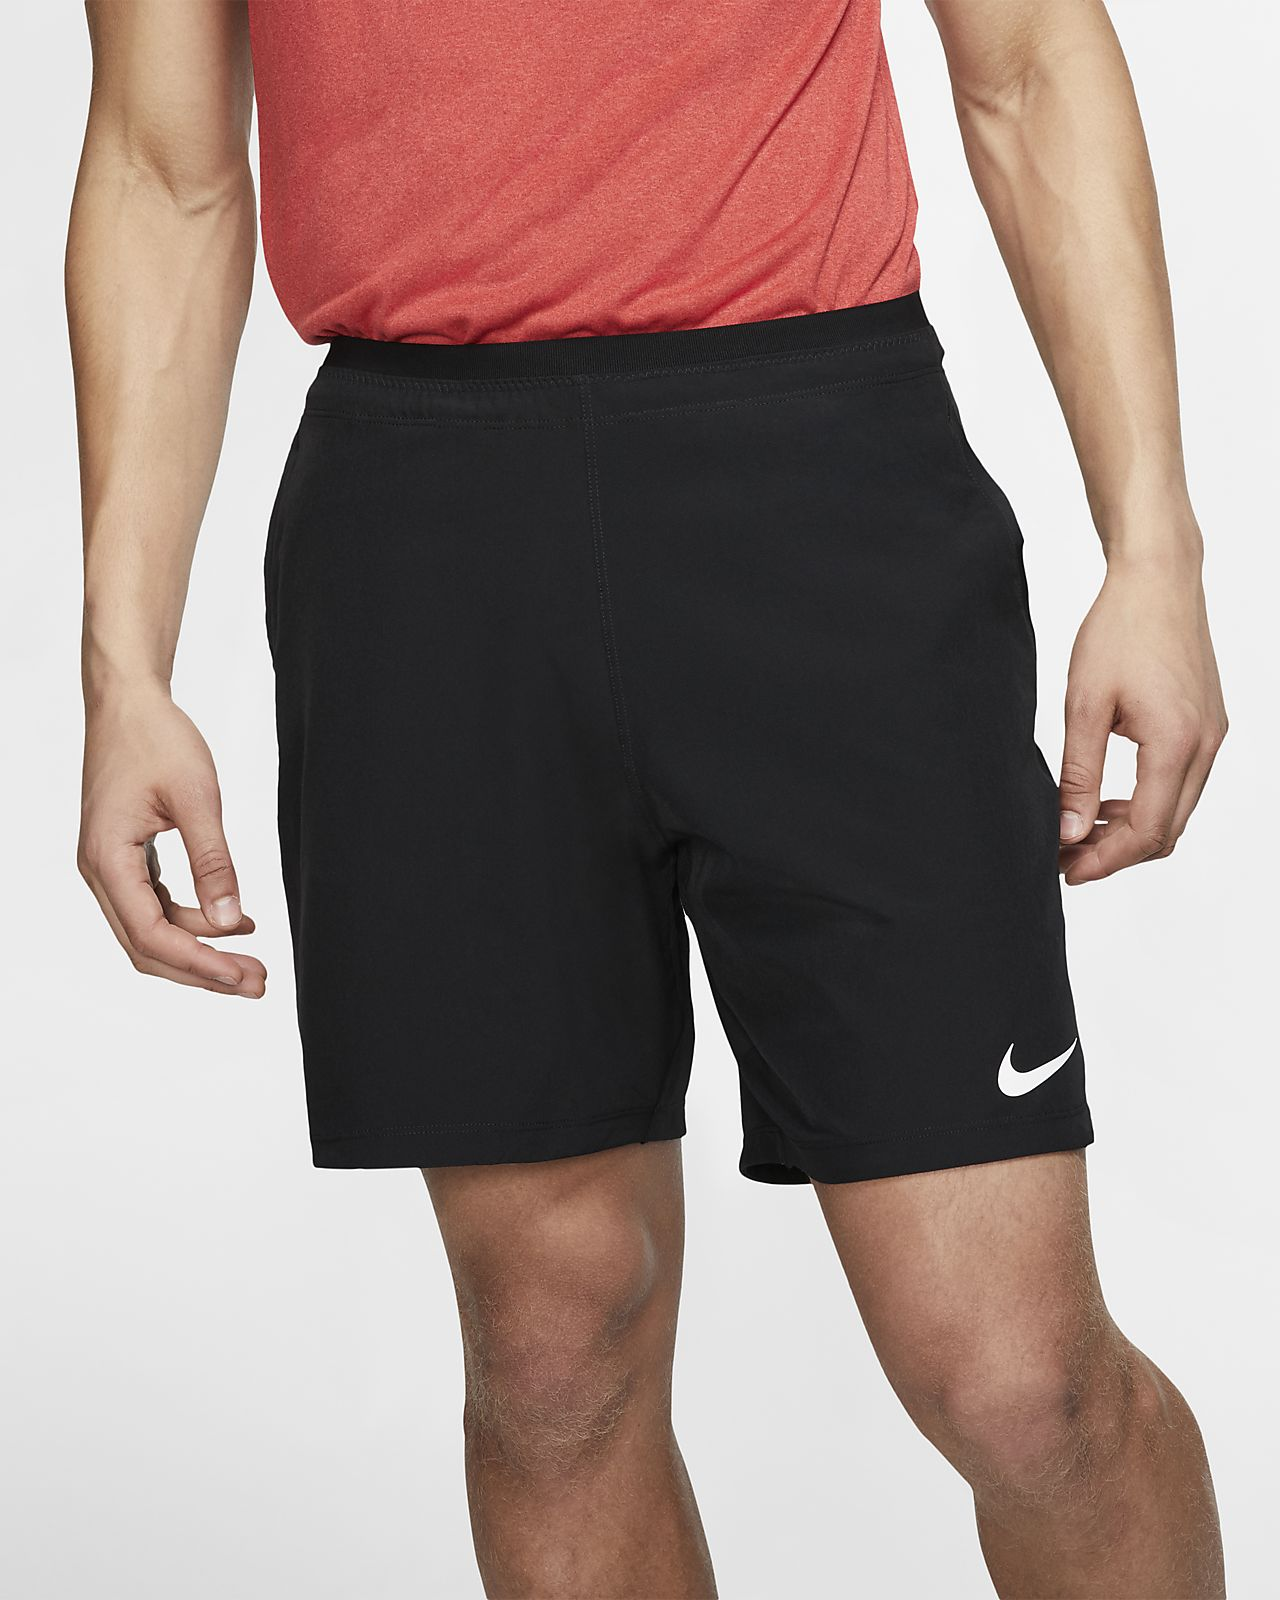 Nike Pro Flex Rep Pantalons curts - Home